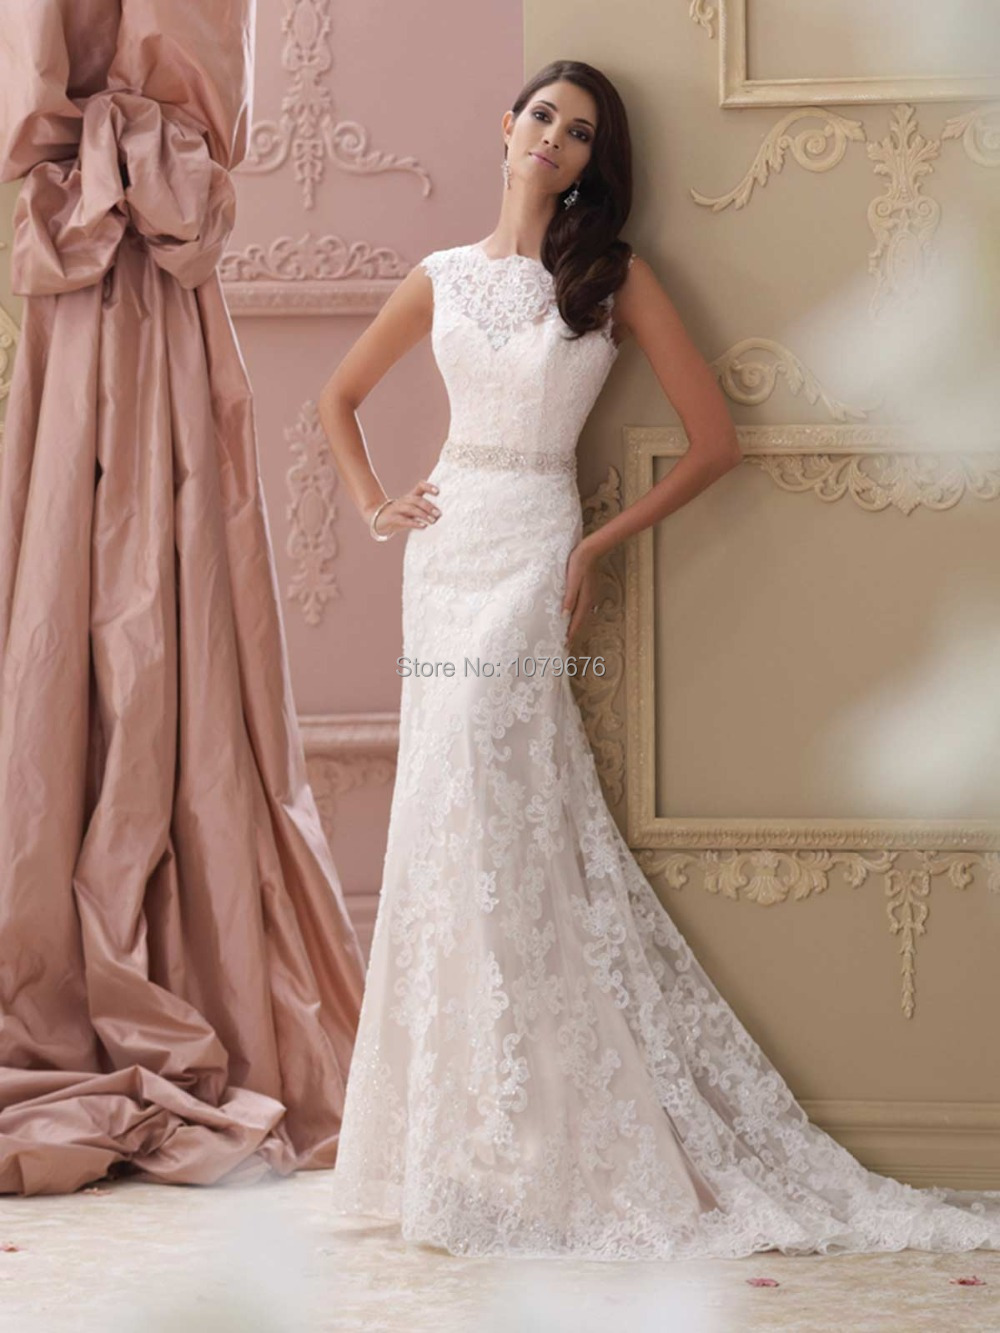 vintage sheath wedding dresses